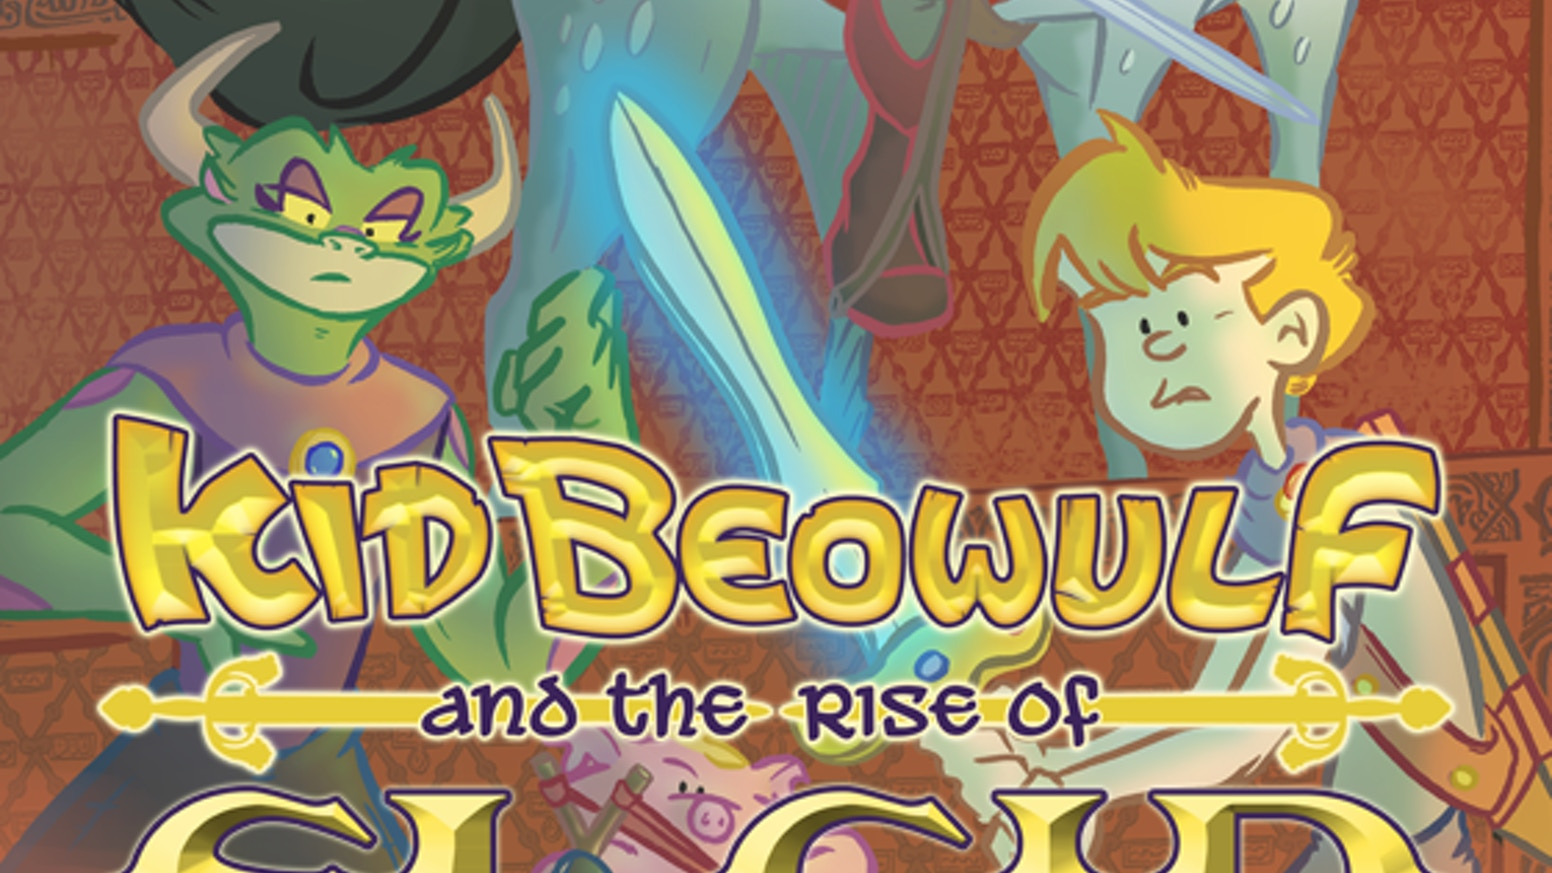 """Kid Beowulf and the Rise of El Cid"" is the third book in the graphic novel adventure series Kid Beowulf!"